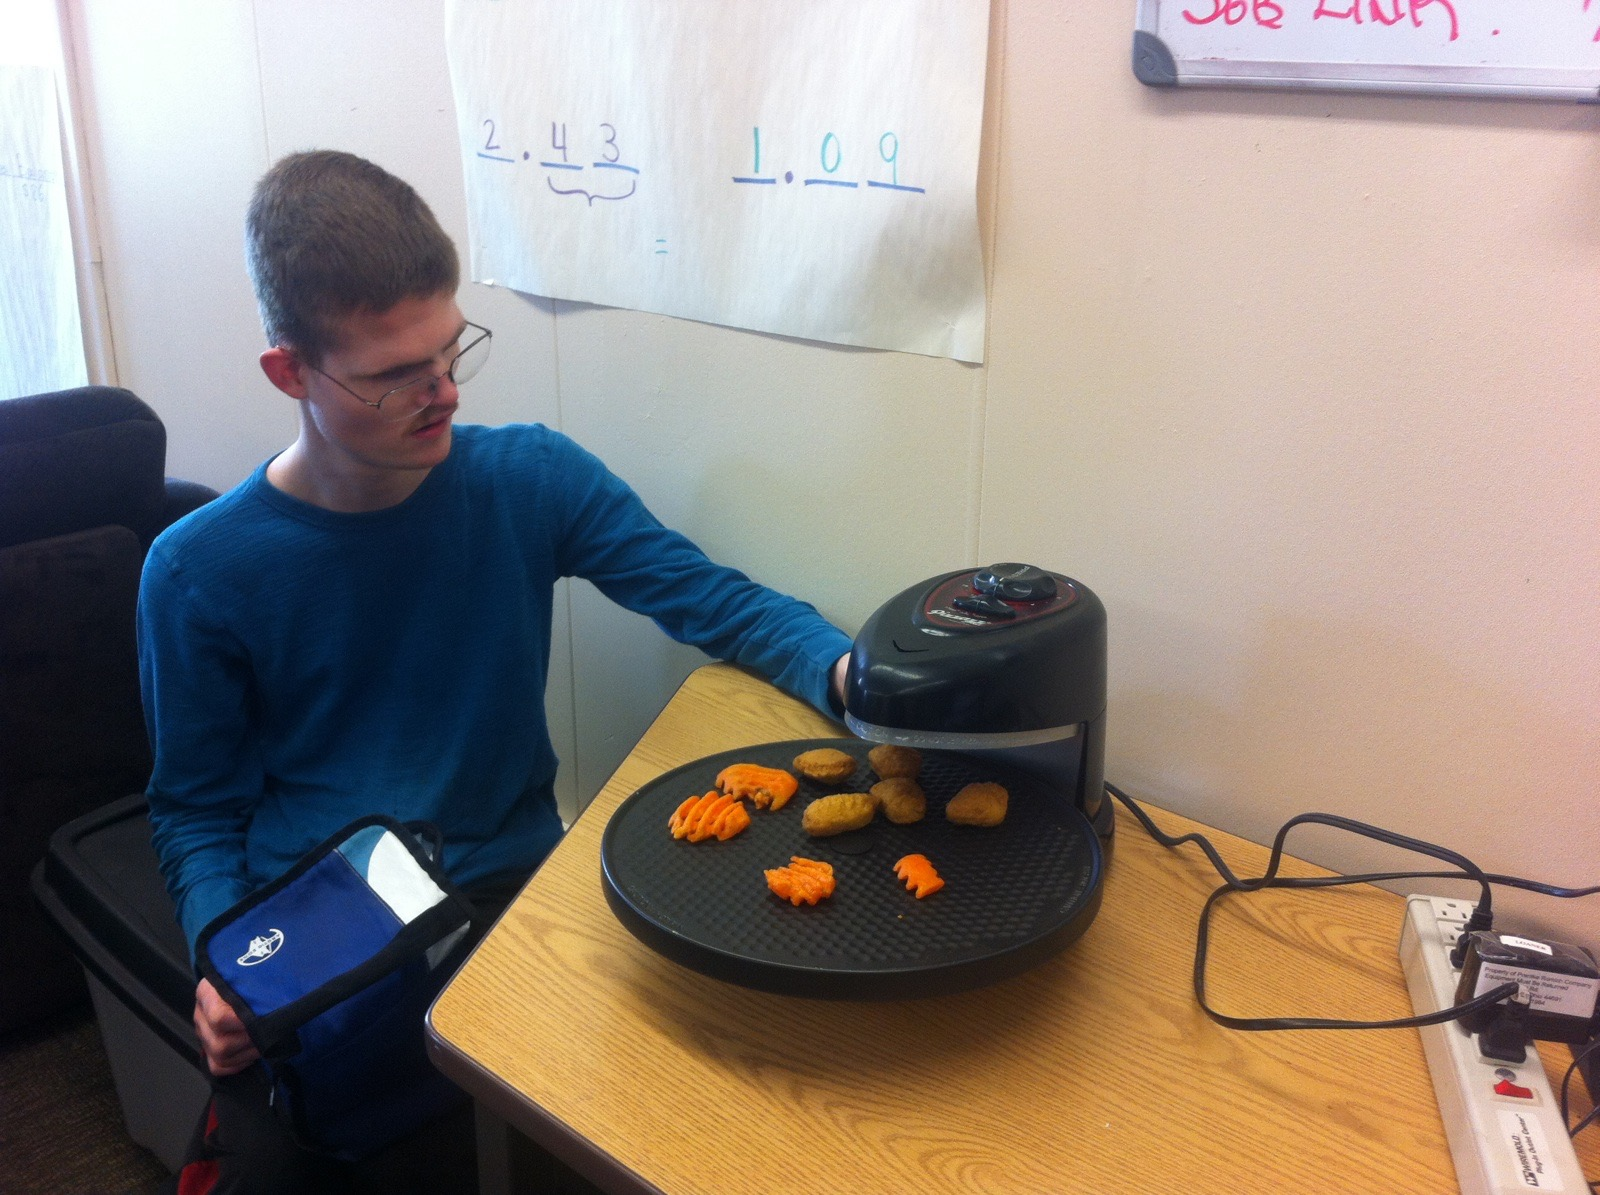 A young man who is deaf-blind is sitting at a table cooking carrots and potatoes on an electronic cooking device.